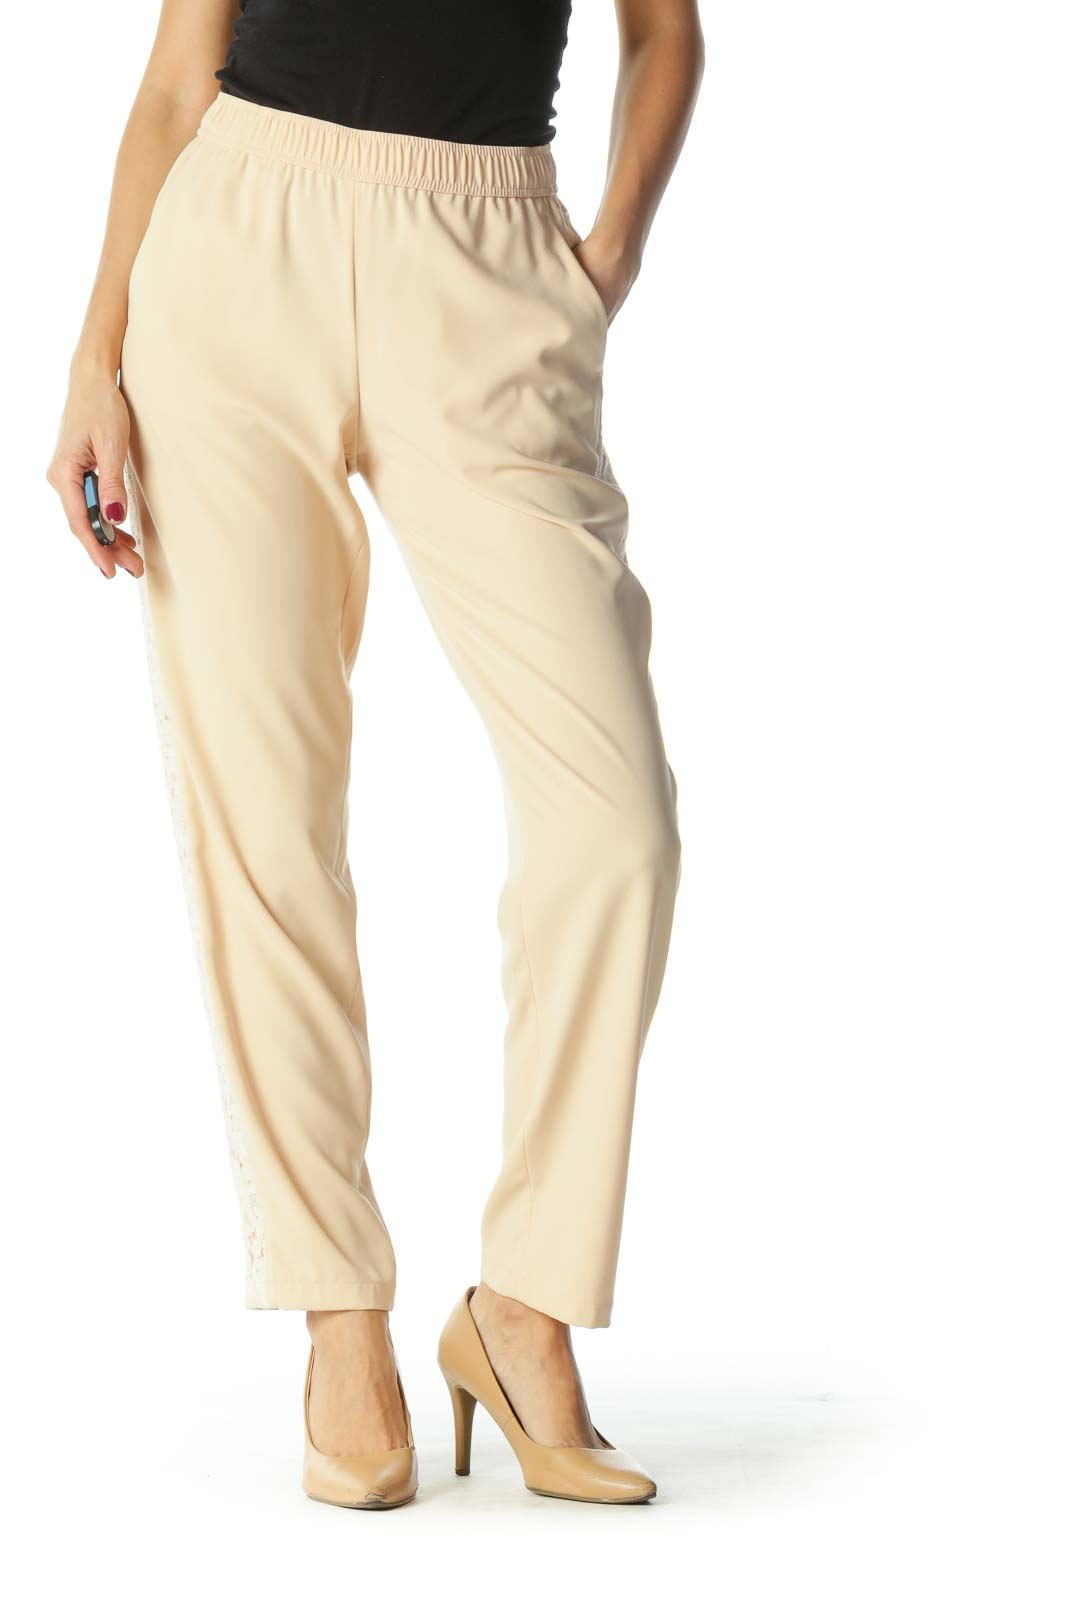 Cream Lace Tapered Pants